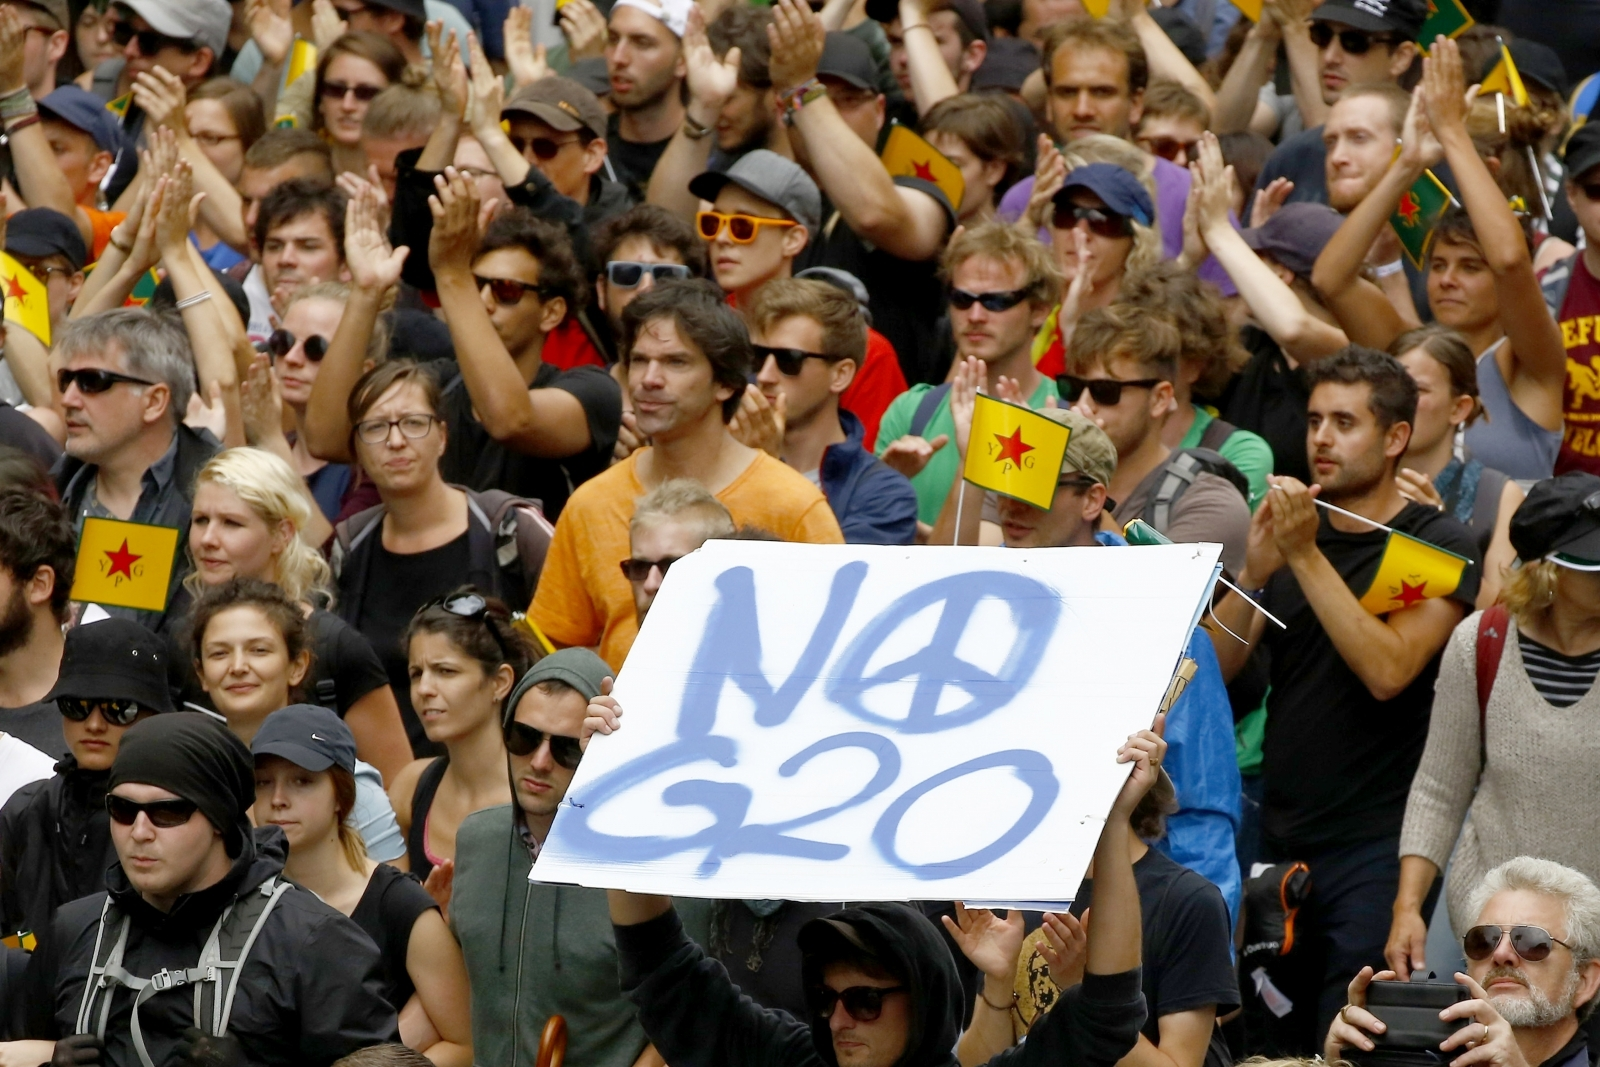 G20 protesters